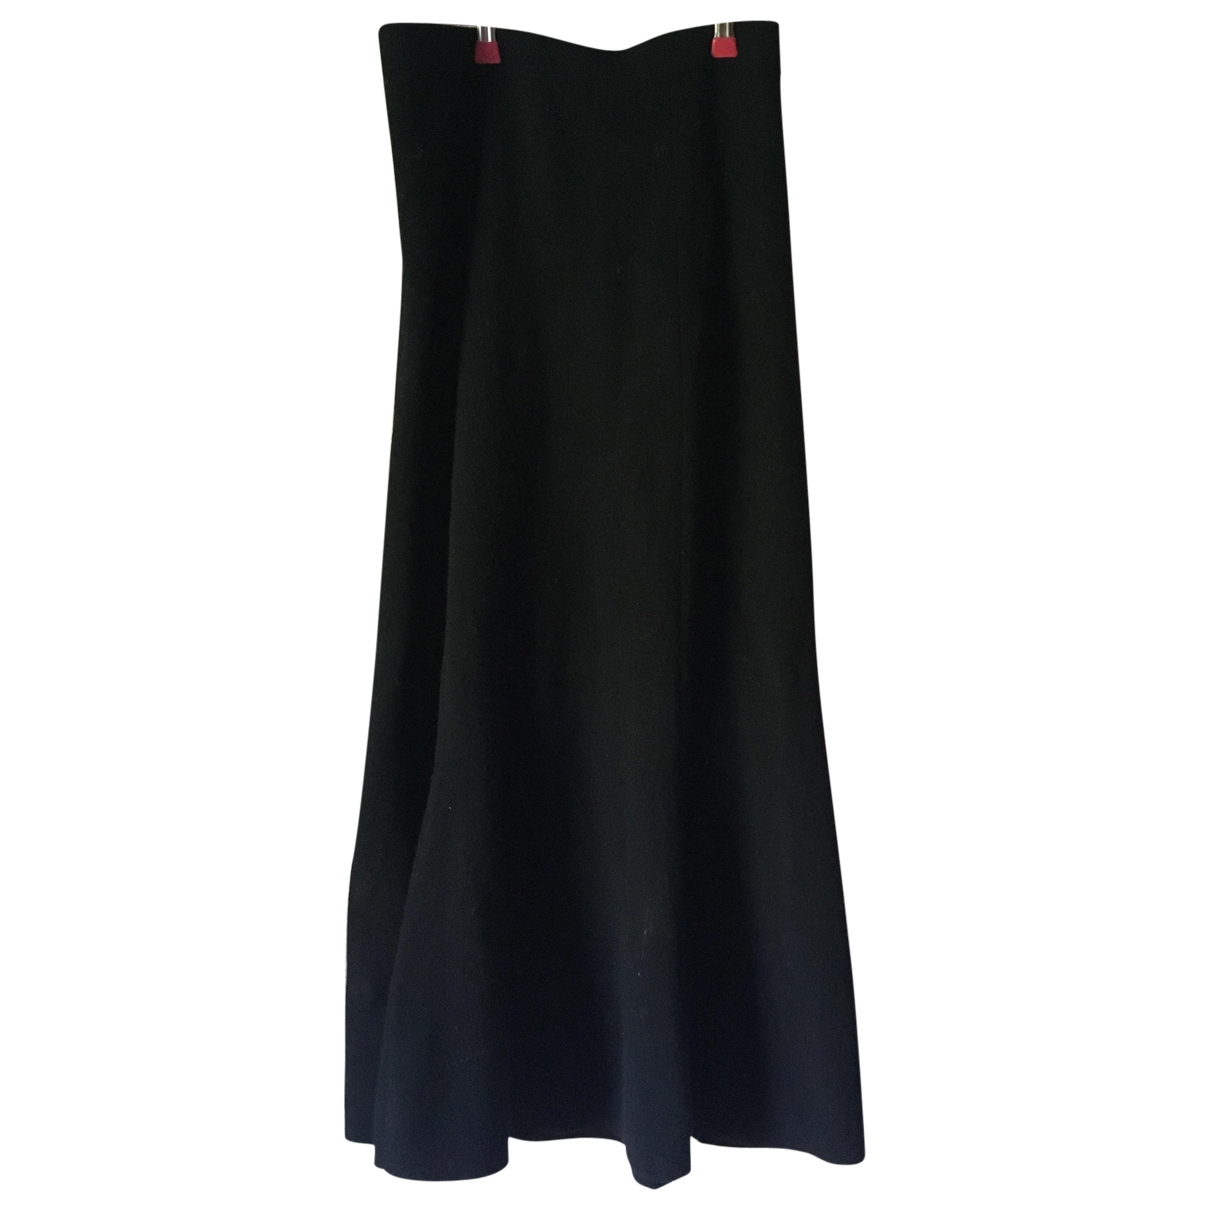 Joseph \N Black Wool skirt for Women S International